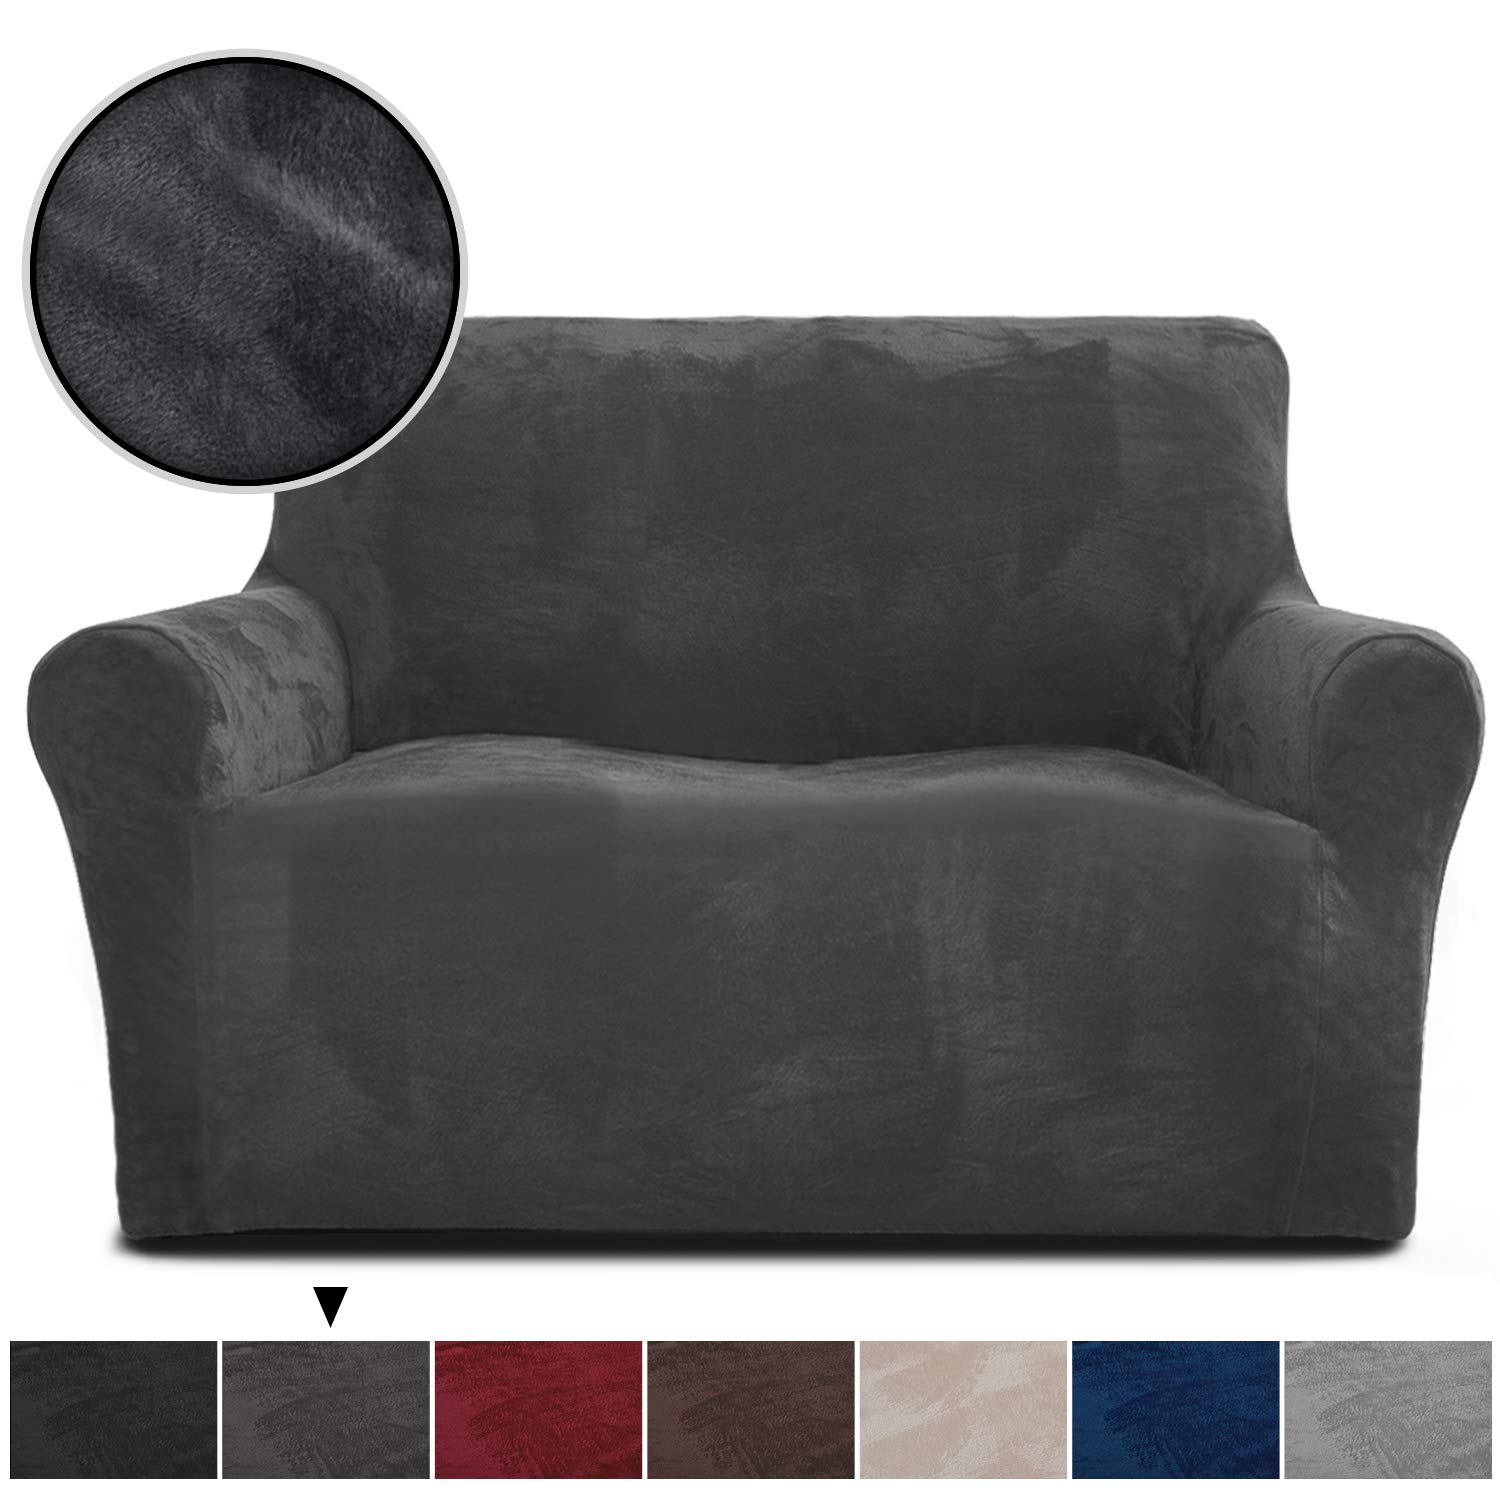 Rose Home Fashion RHF Velvet Loveseat Slipcover Slipcovers for Couches and Loveseats, Loveseat Cover&Couch Cover for Dogs, 1-Piece Sofa Protector(Dark ...